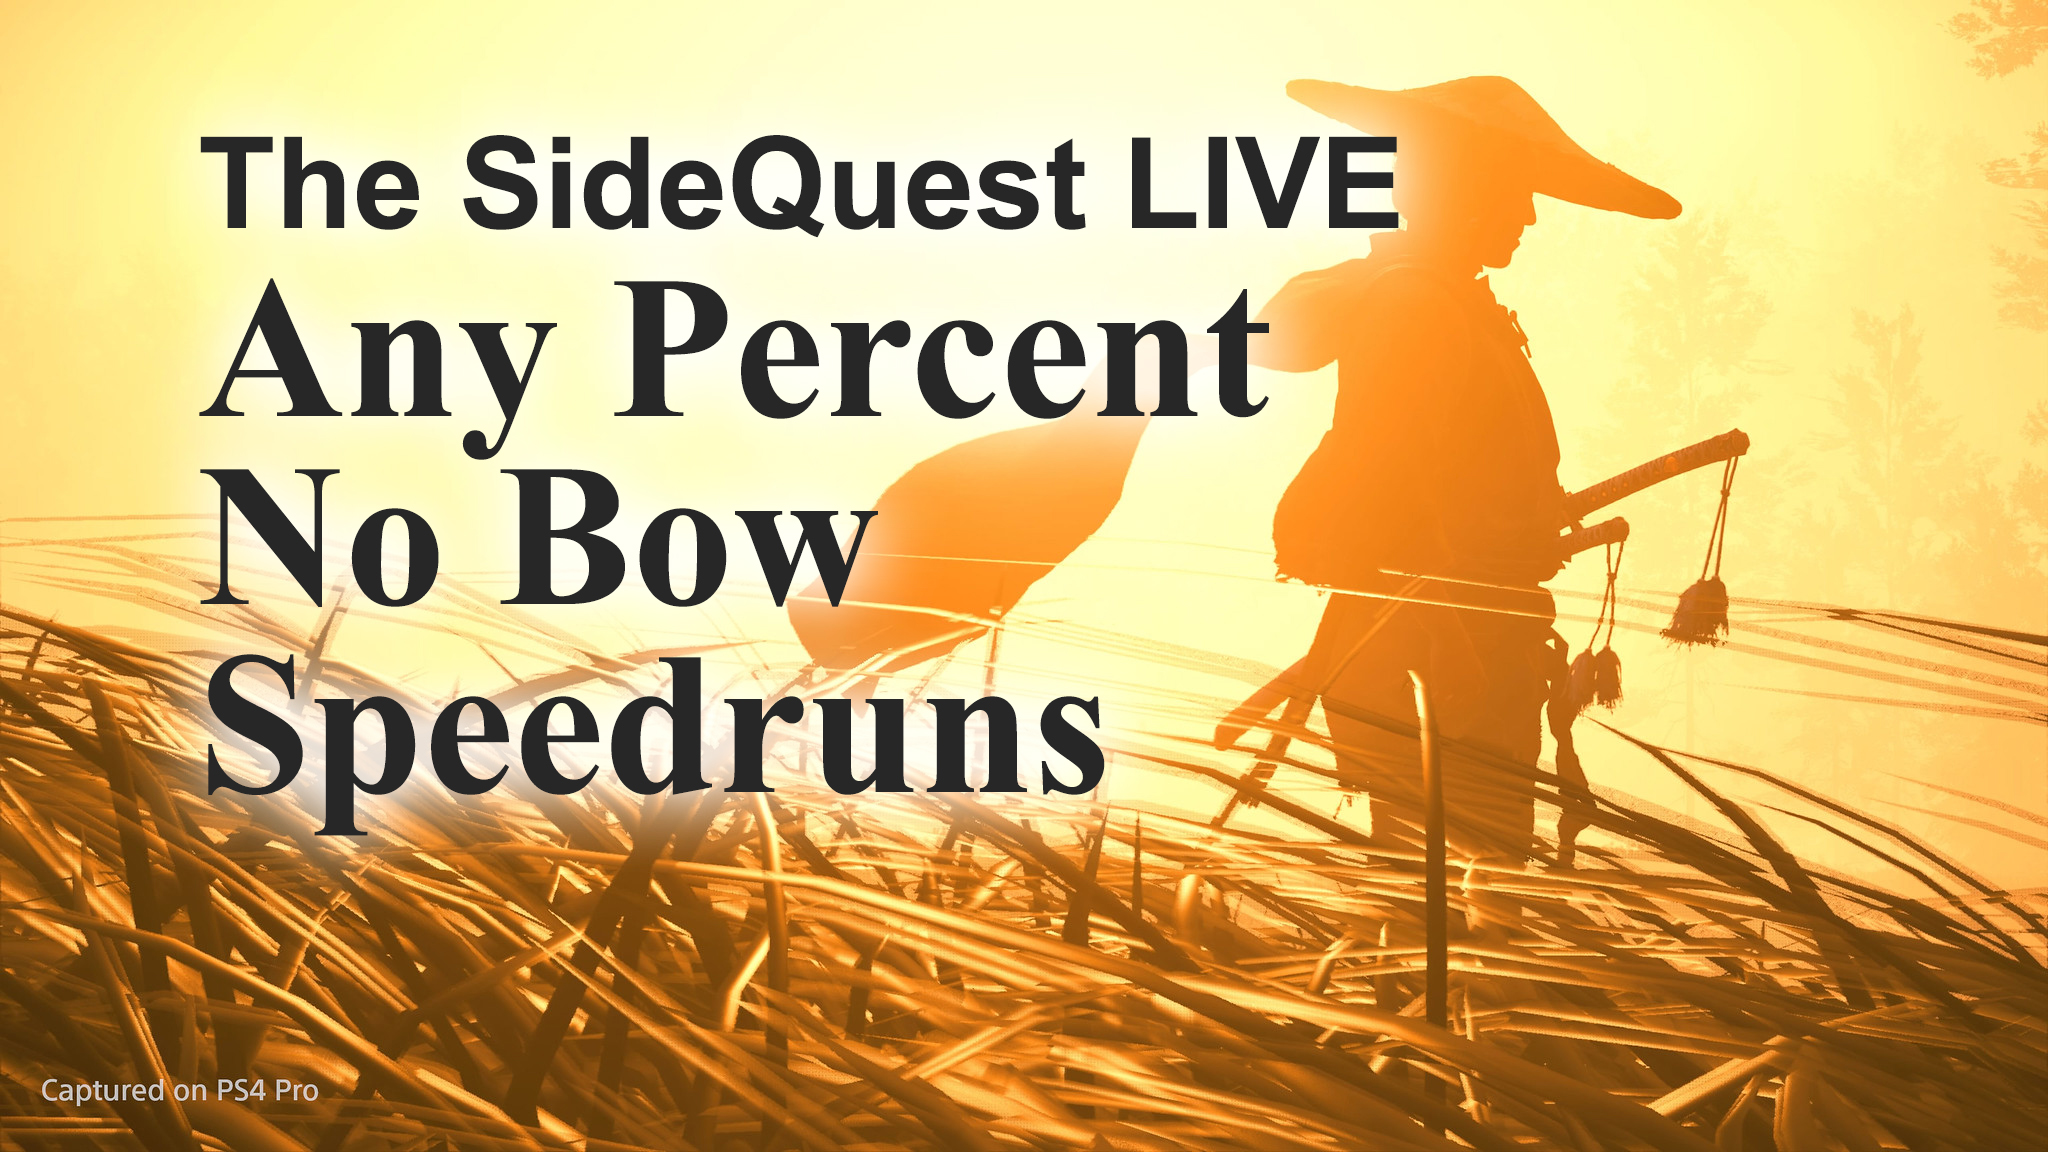 The SideQuest LIVE! July 17, 2020: Any Percent No Bow Speedruns